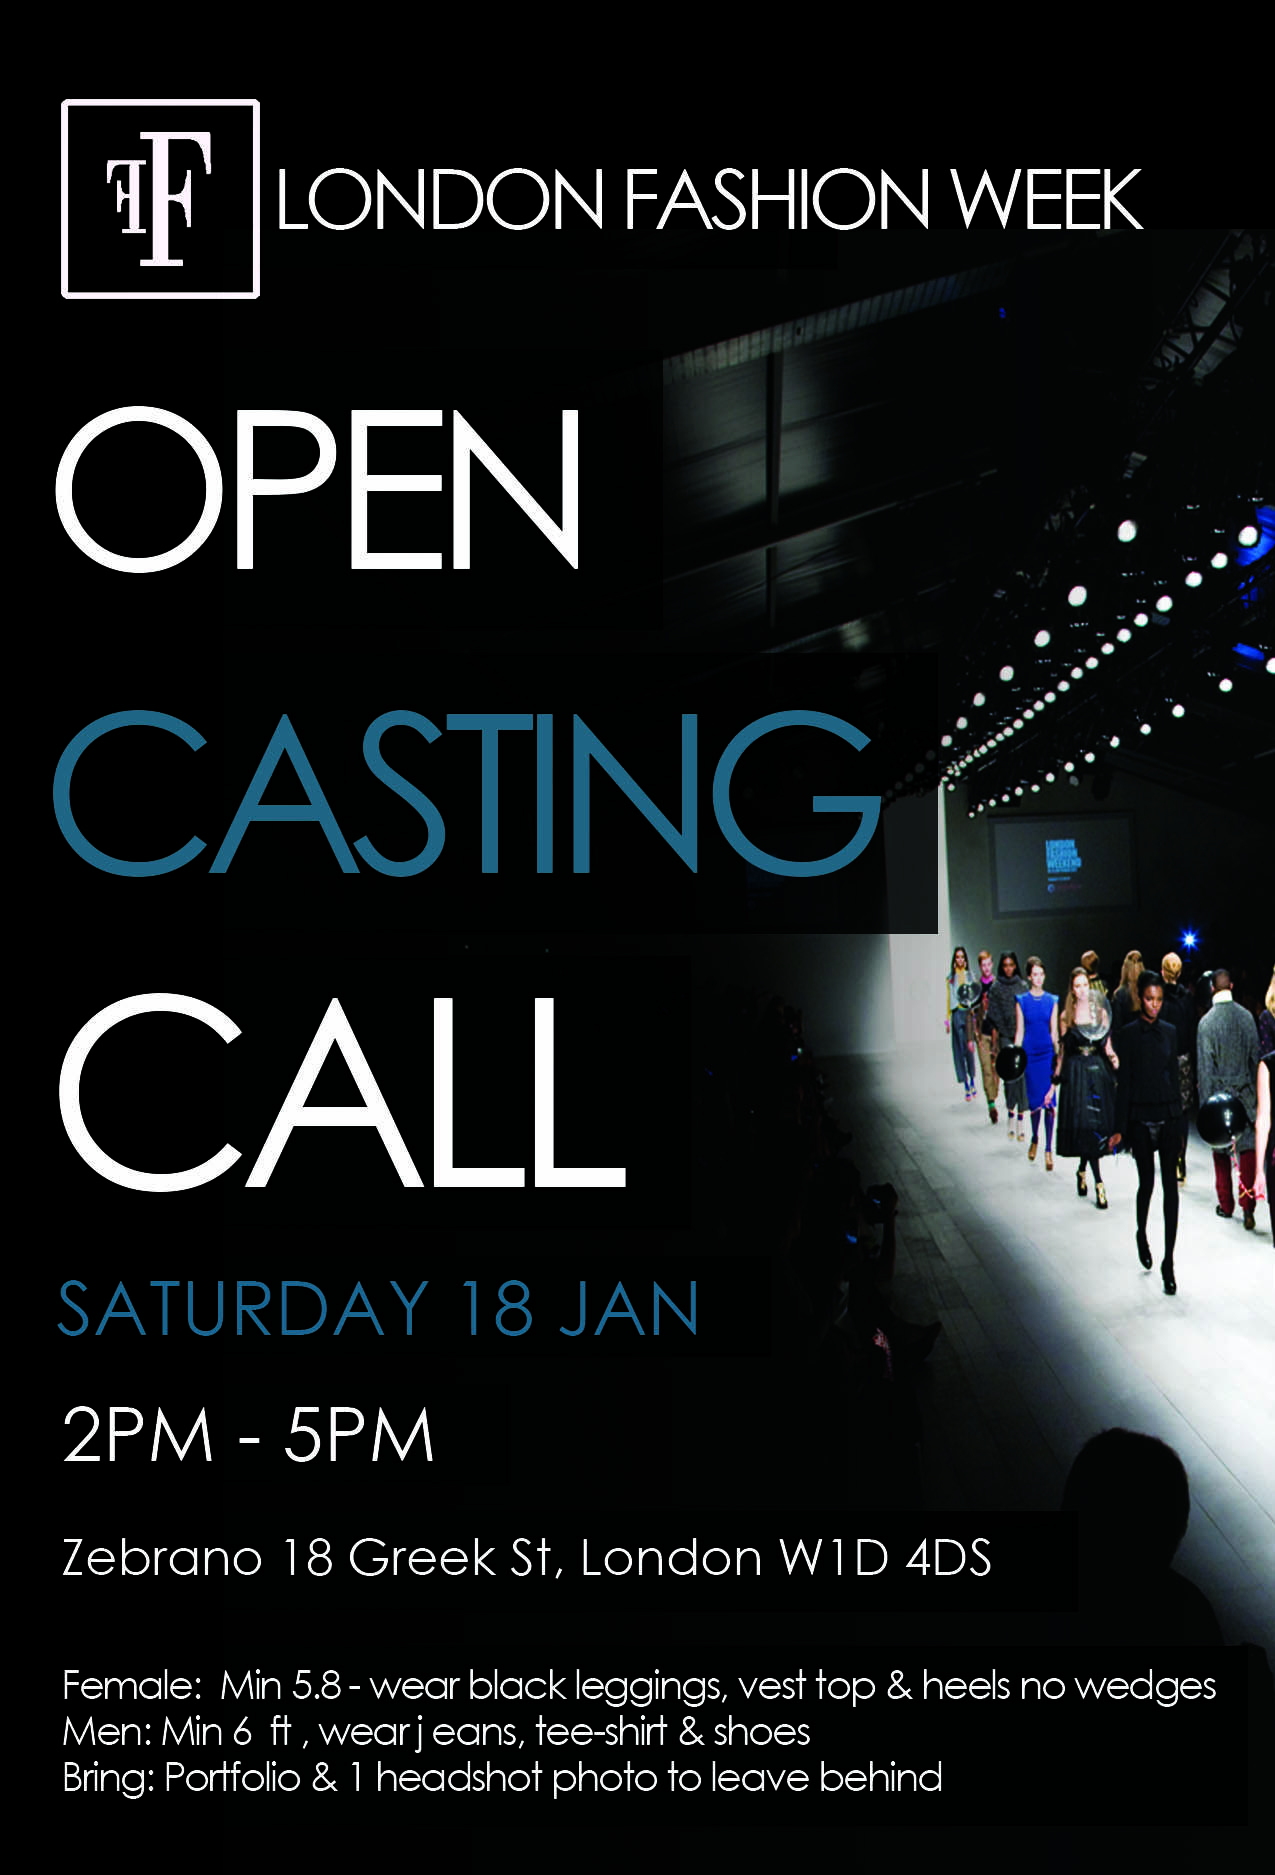 casting call opportunity for male and female models to walk at london fashion week 15